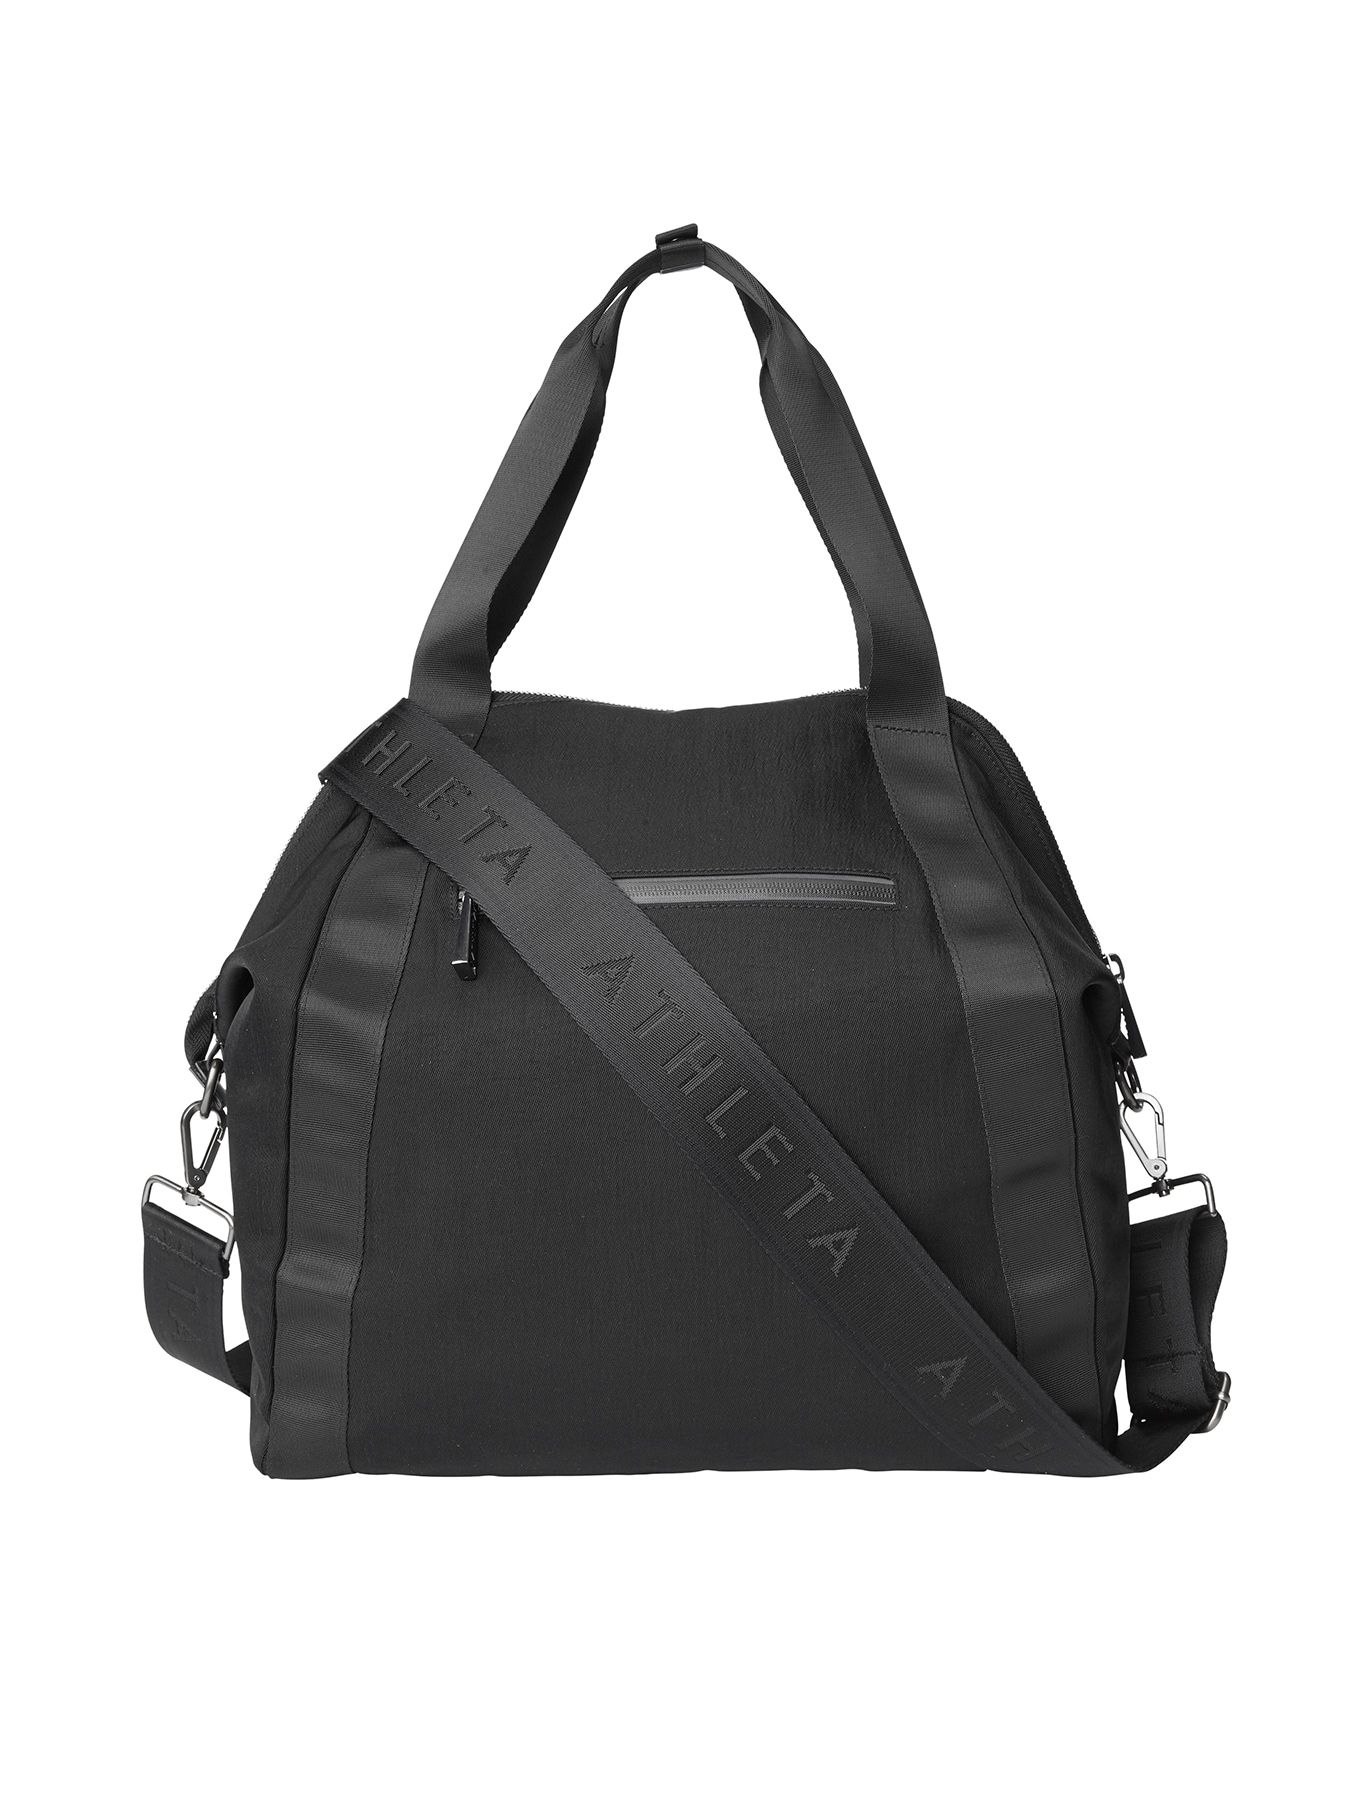 422e2cacc Totally Trippin' Gym Bag | Athleta Fa17 | Work | Gym bag, Bags ...